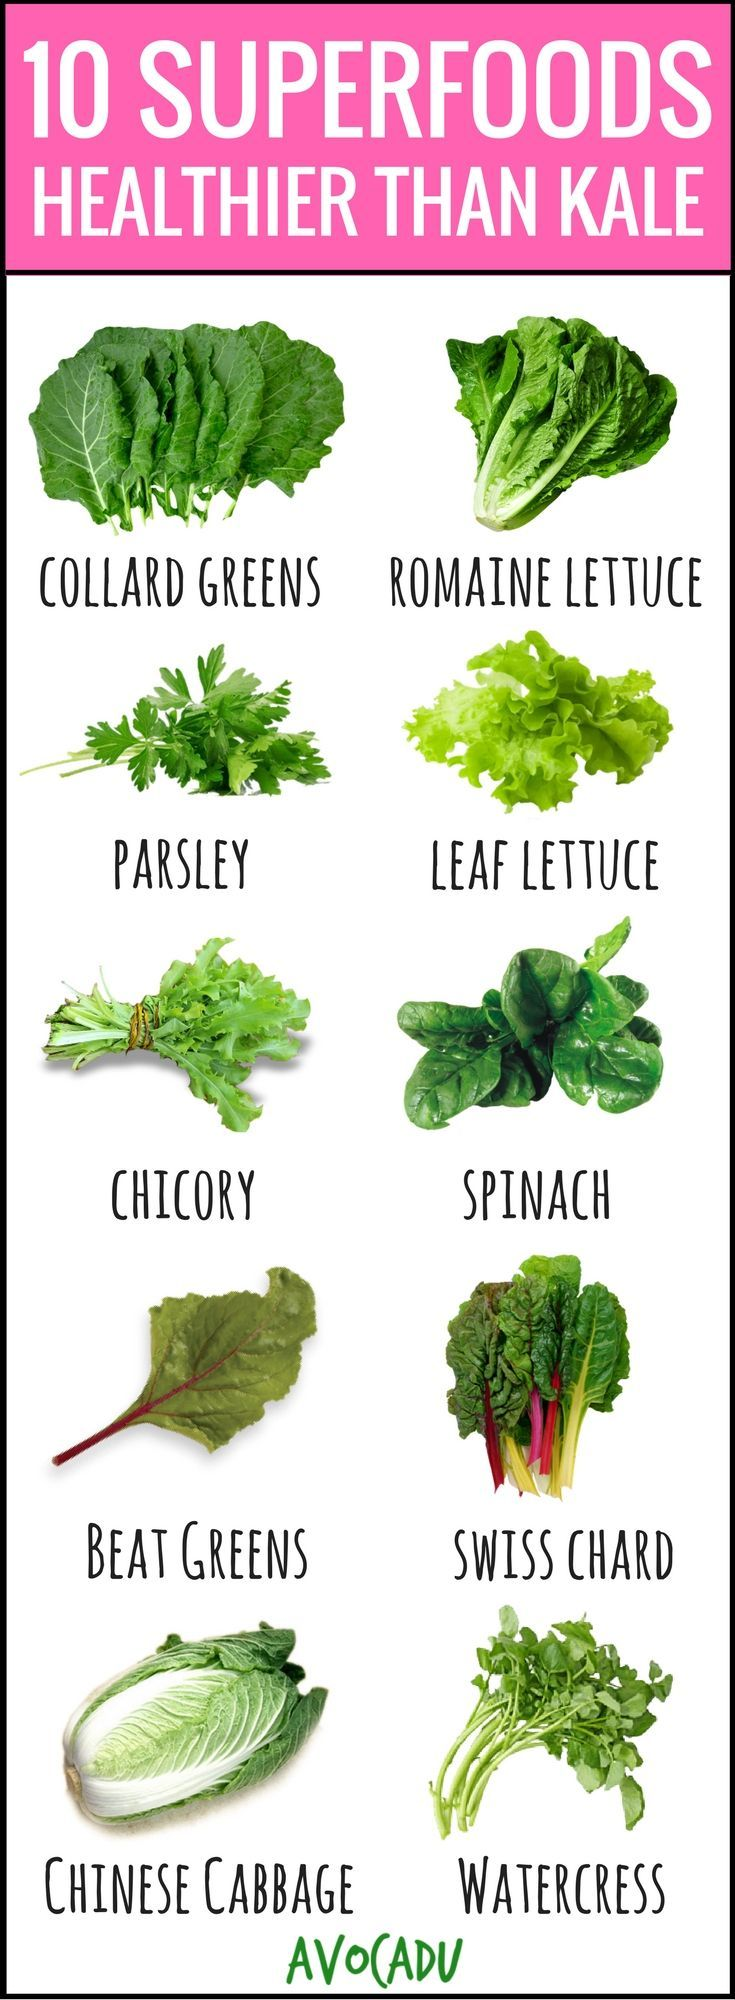 These healthy foods are surprisingly healthier than the almighty superfood that is kale! Lose weight fast by adding these to your diet today! http://avocadu.com/10-superfoods-healthier-than-kale/